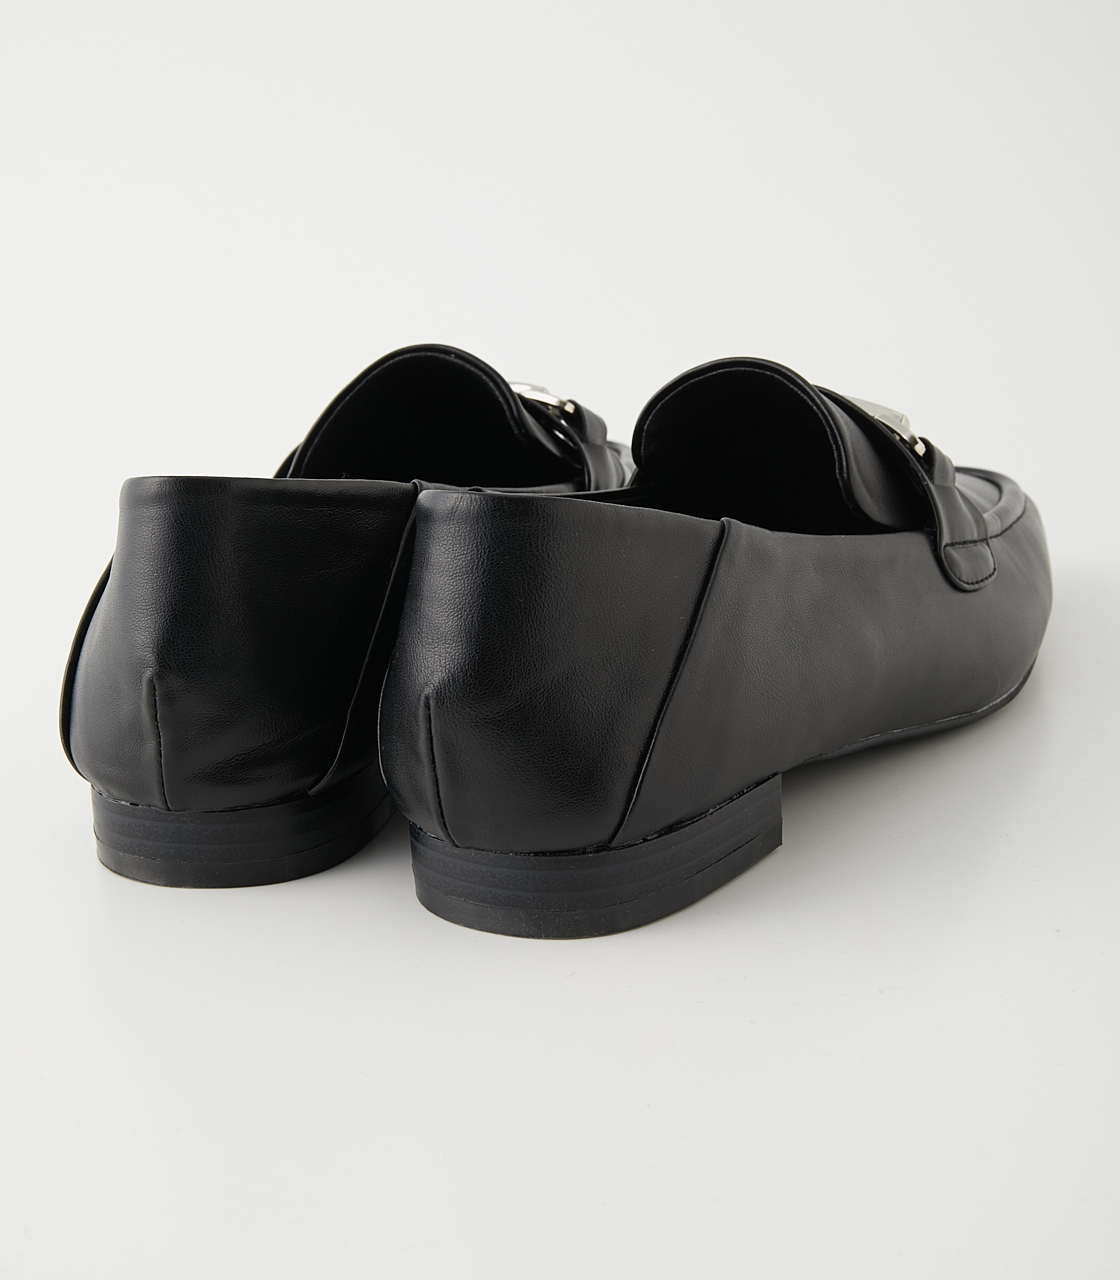 BABOUCHE LOAFER/バブーシュローファー 詳細画像 BLK 4